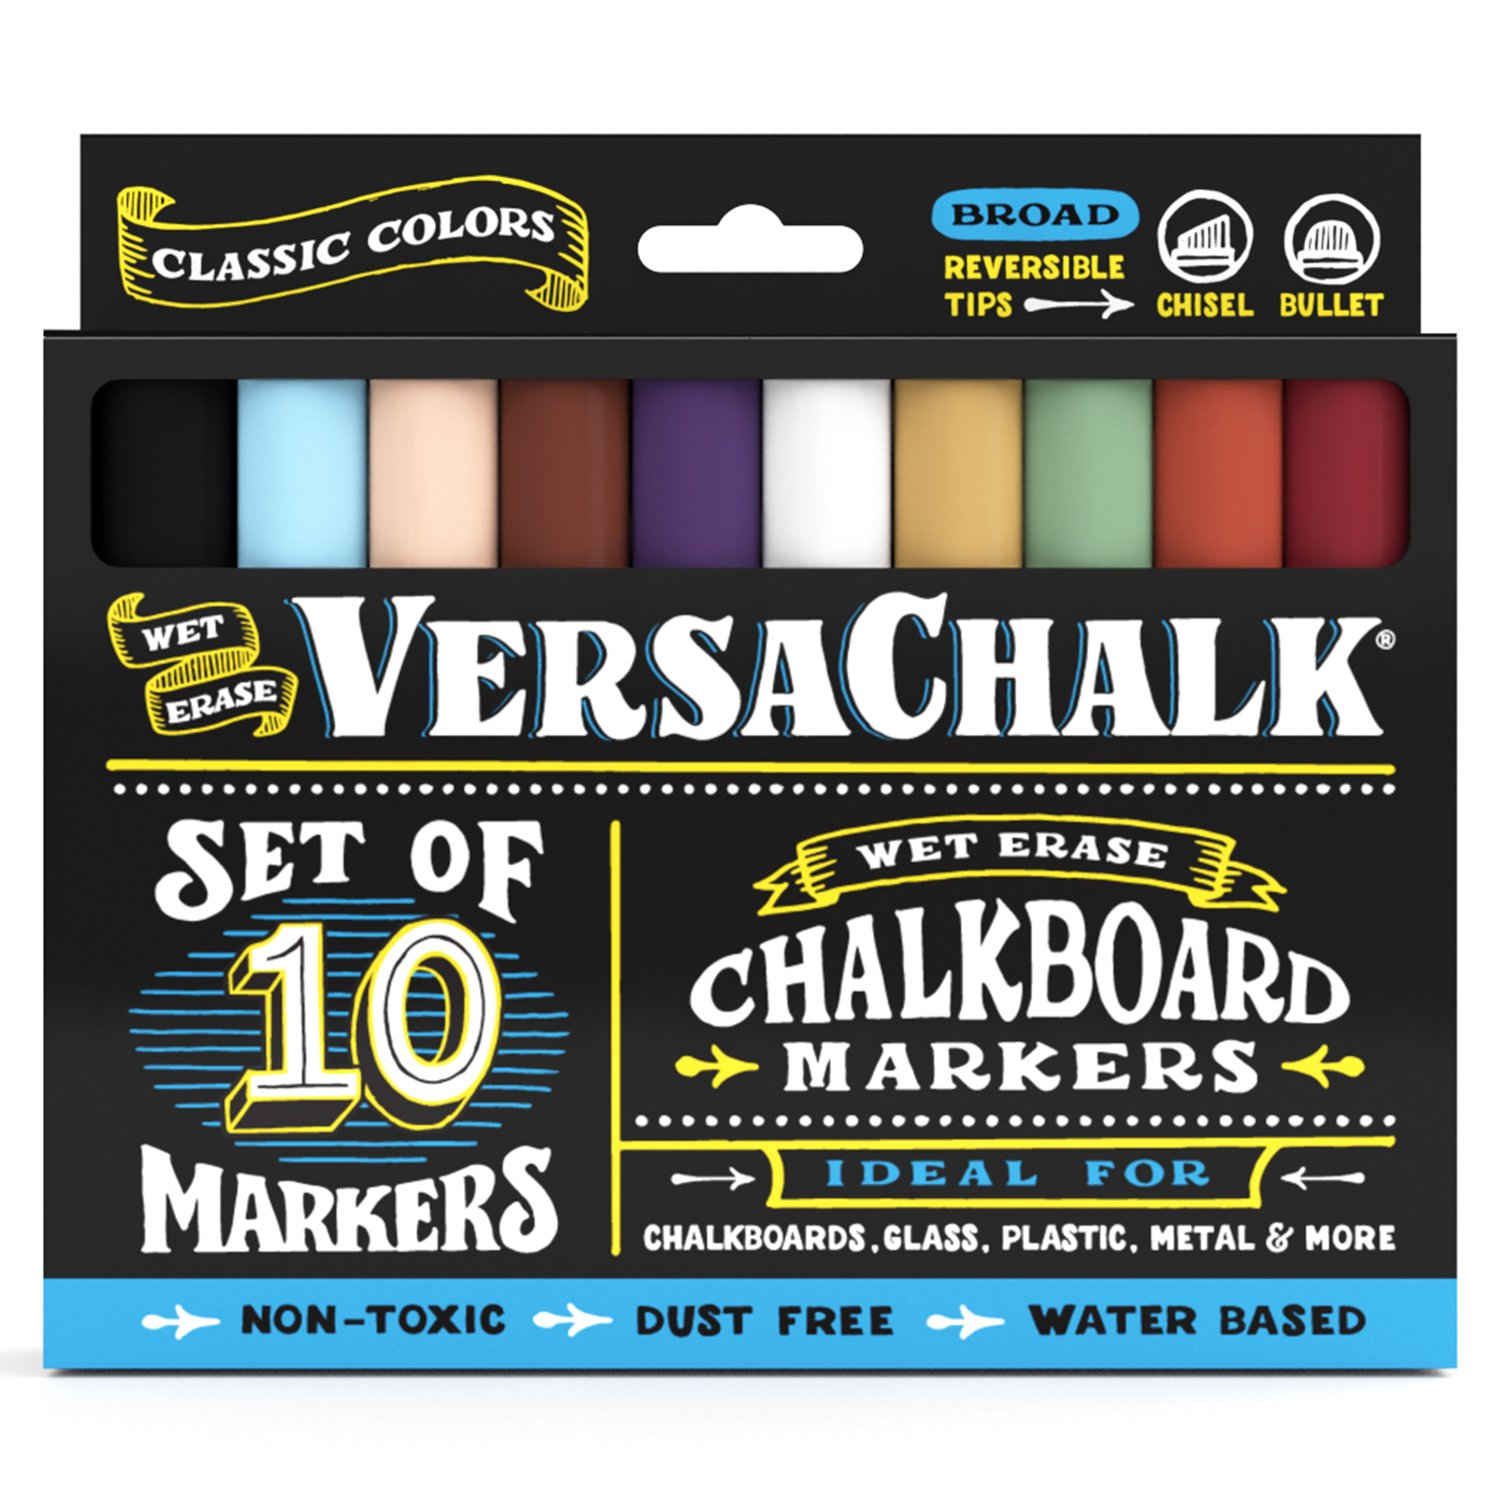 VersaChalk Chalkboard Chalk Markers (10-Pack)| Dust Free, Water-Based, Non-Toxic | Wet Erase Chalk Ink Pens Bold 5mm Classic Colors Set